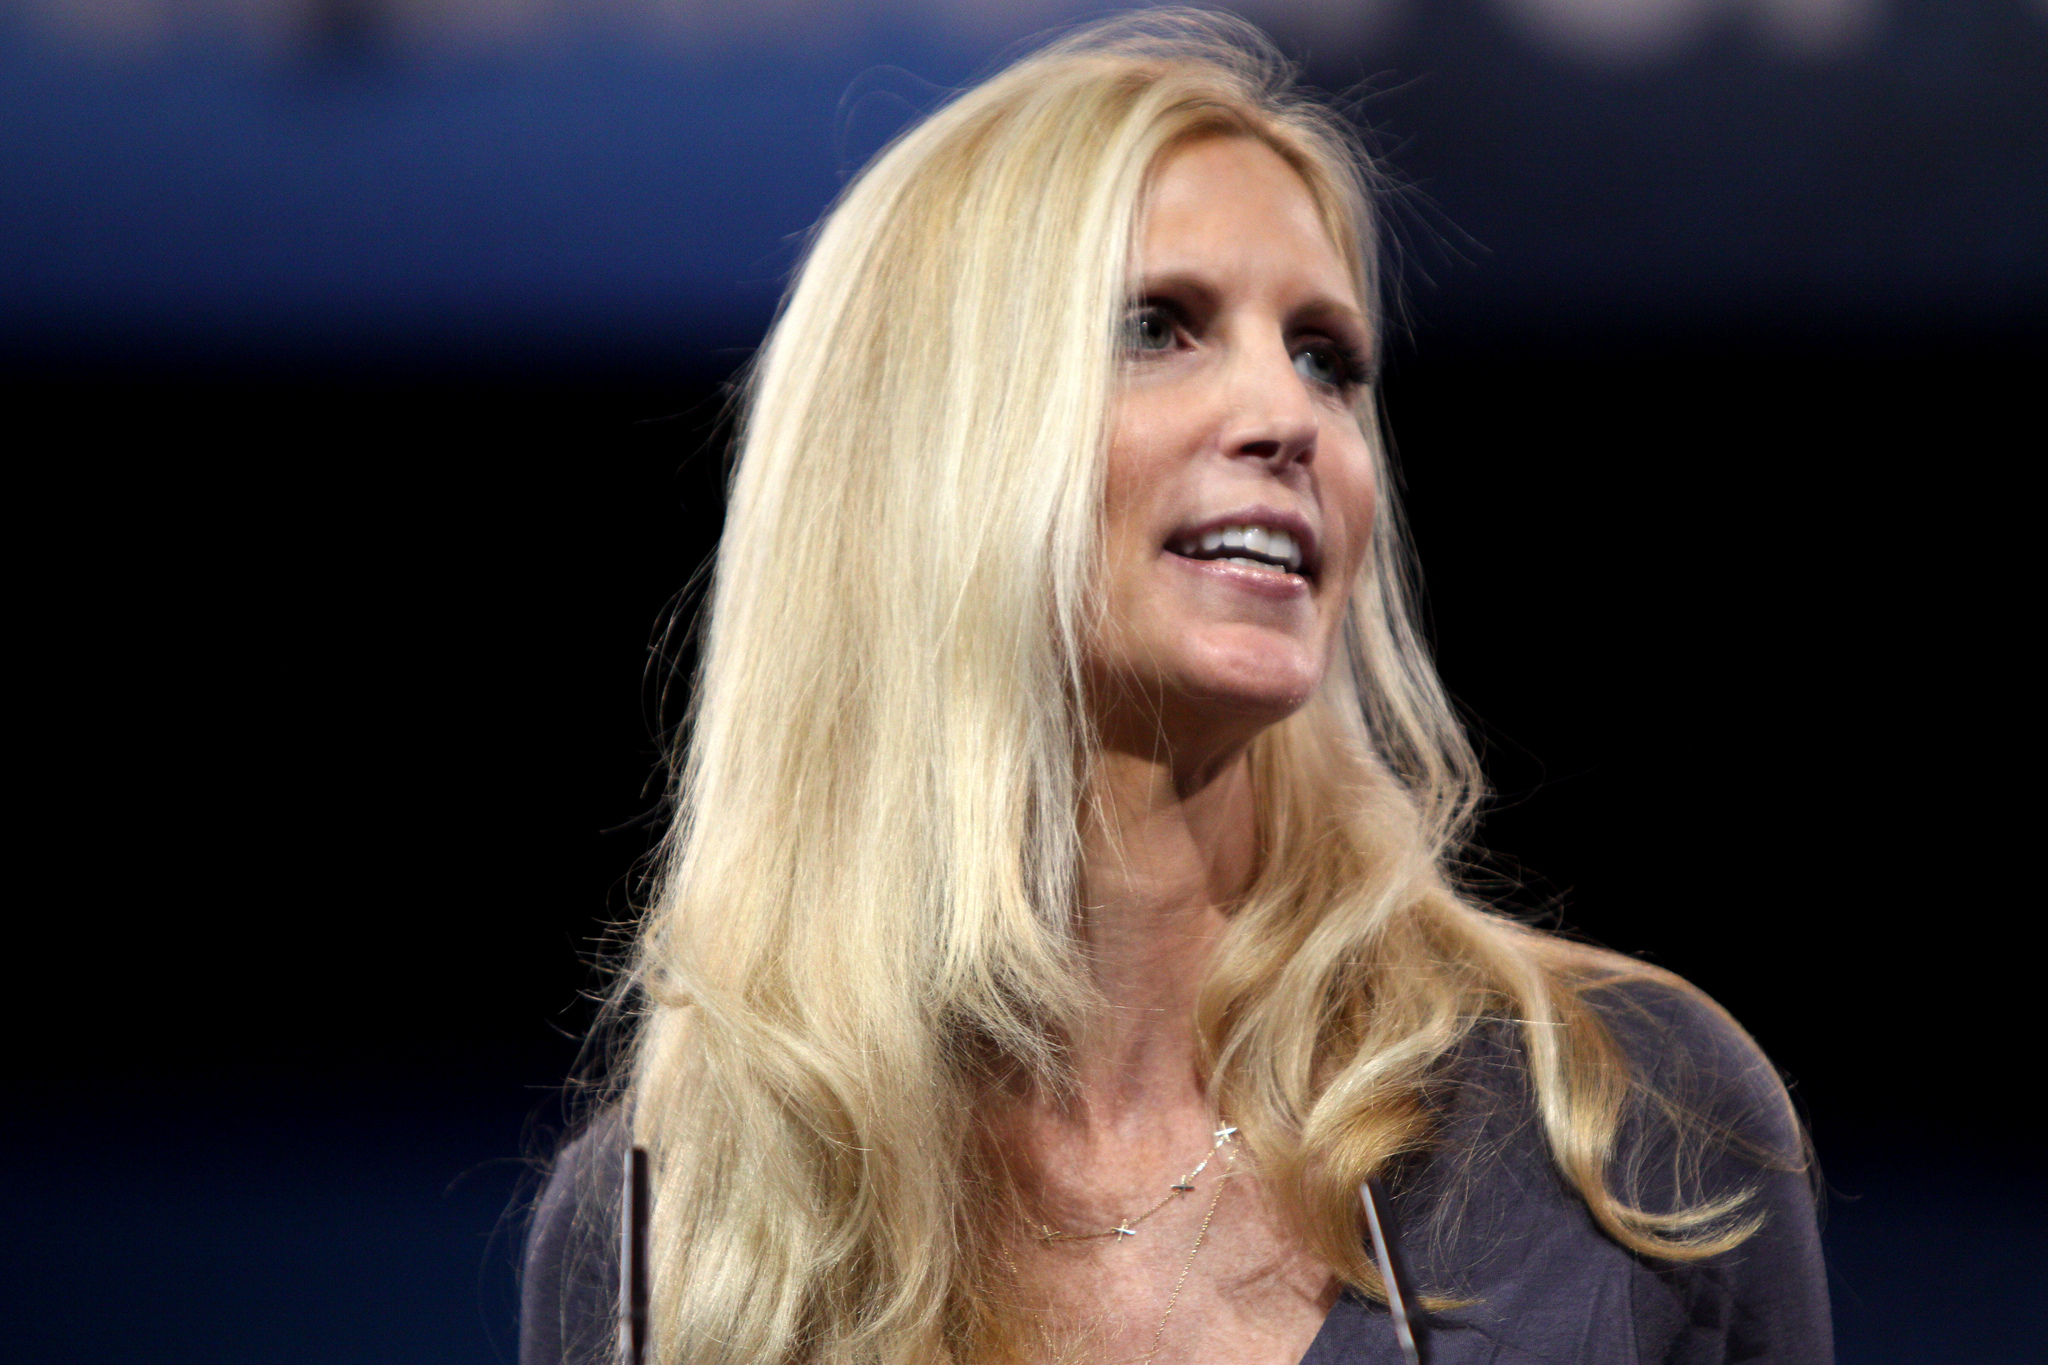 Protesters stage walk-out during Ann Coulter talk at the Union